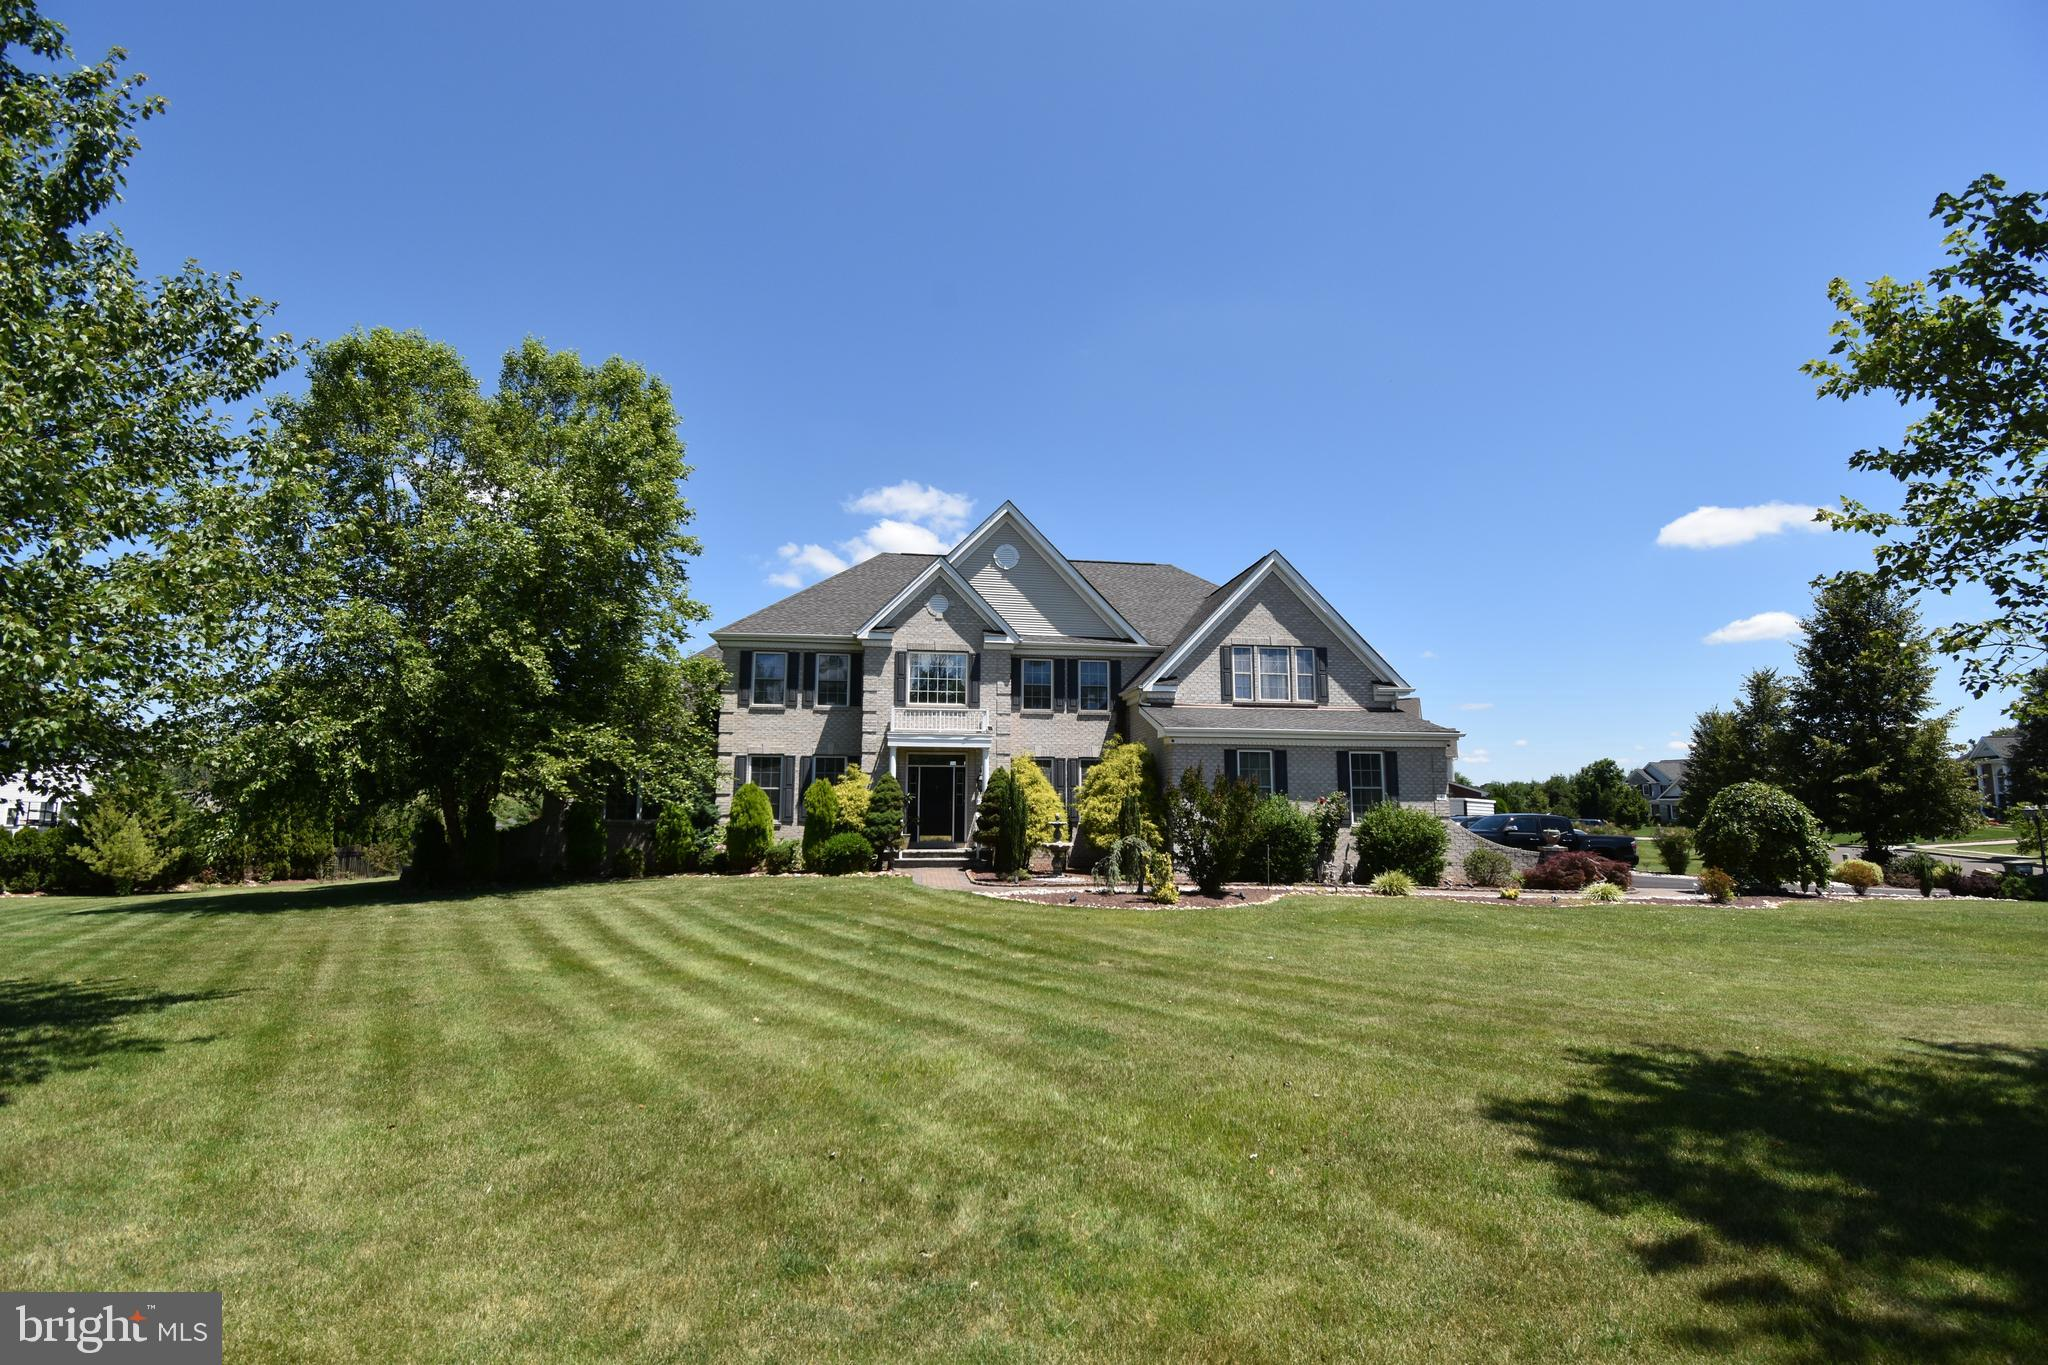 4 ALDERBERRY COURT, IVYLAND, PA 18974